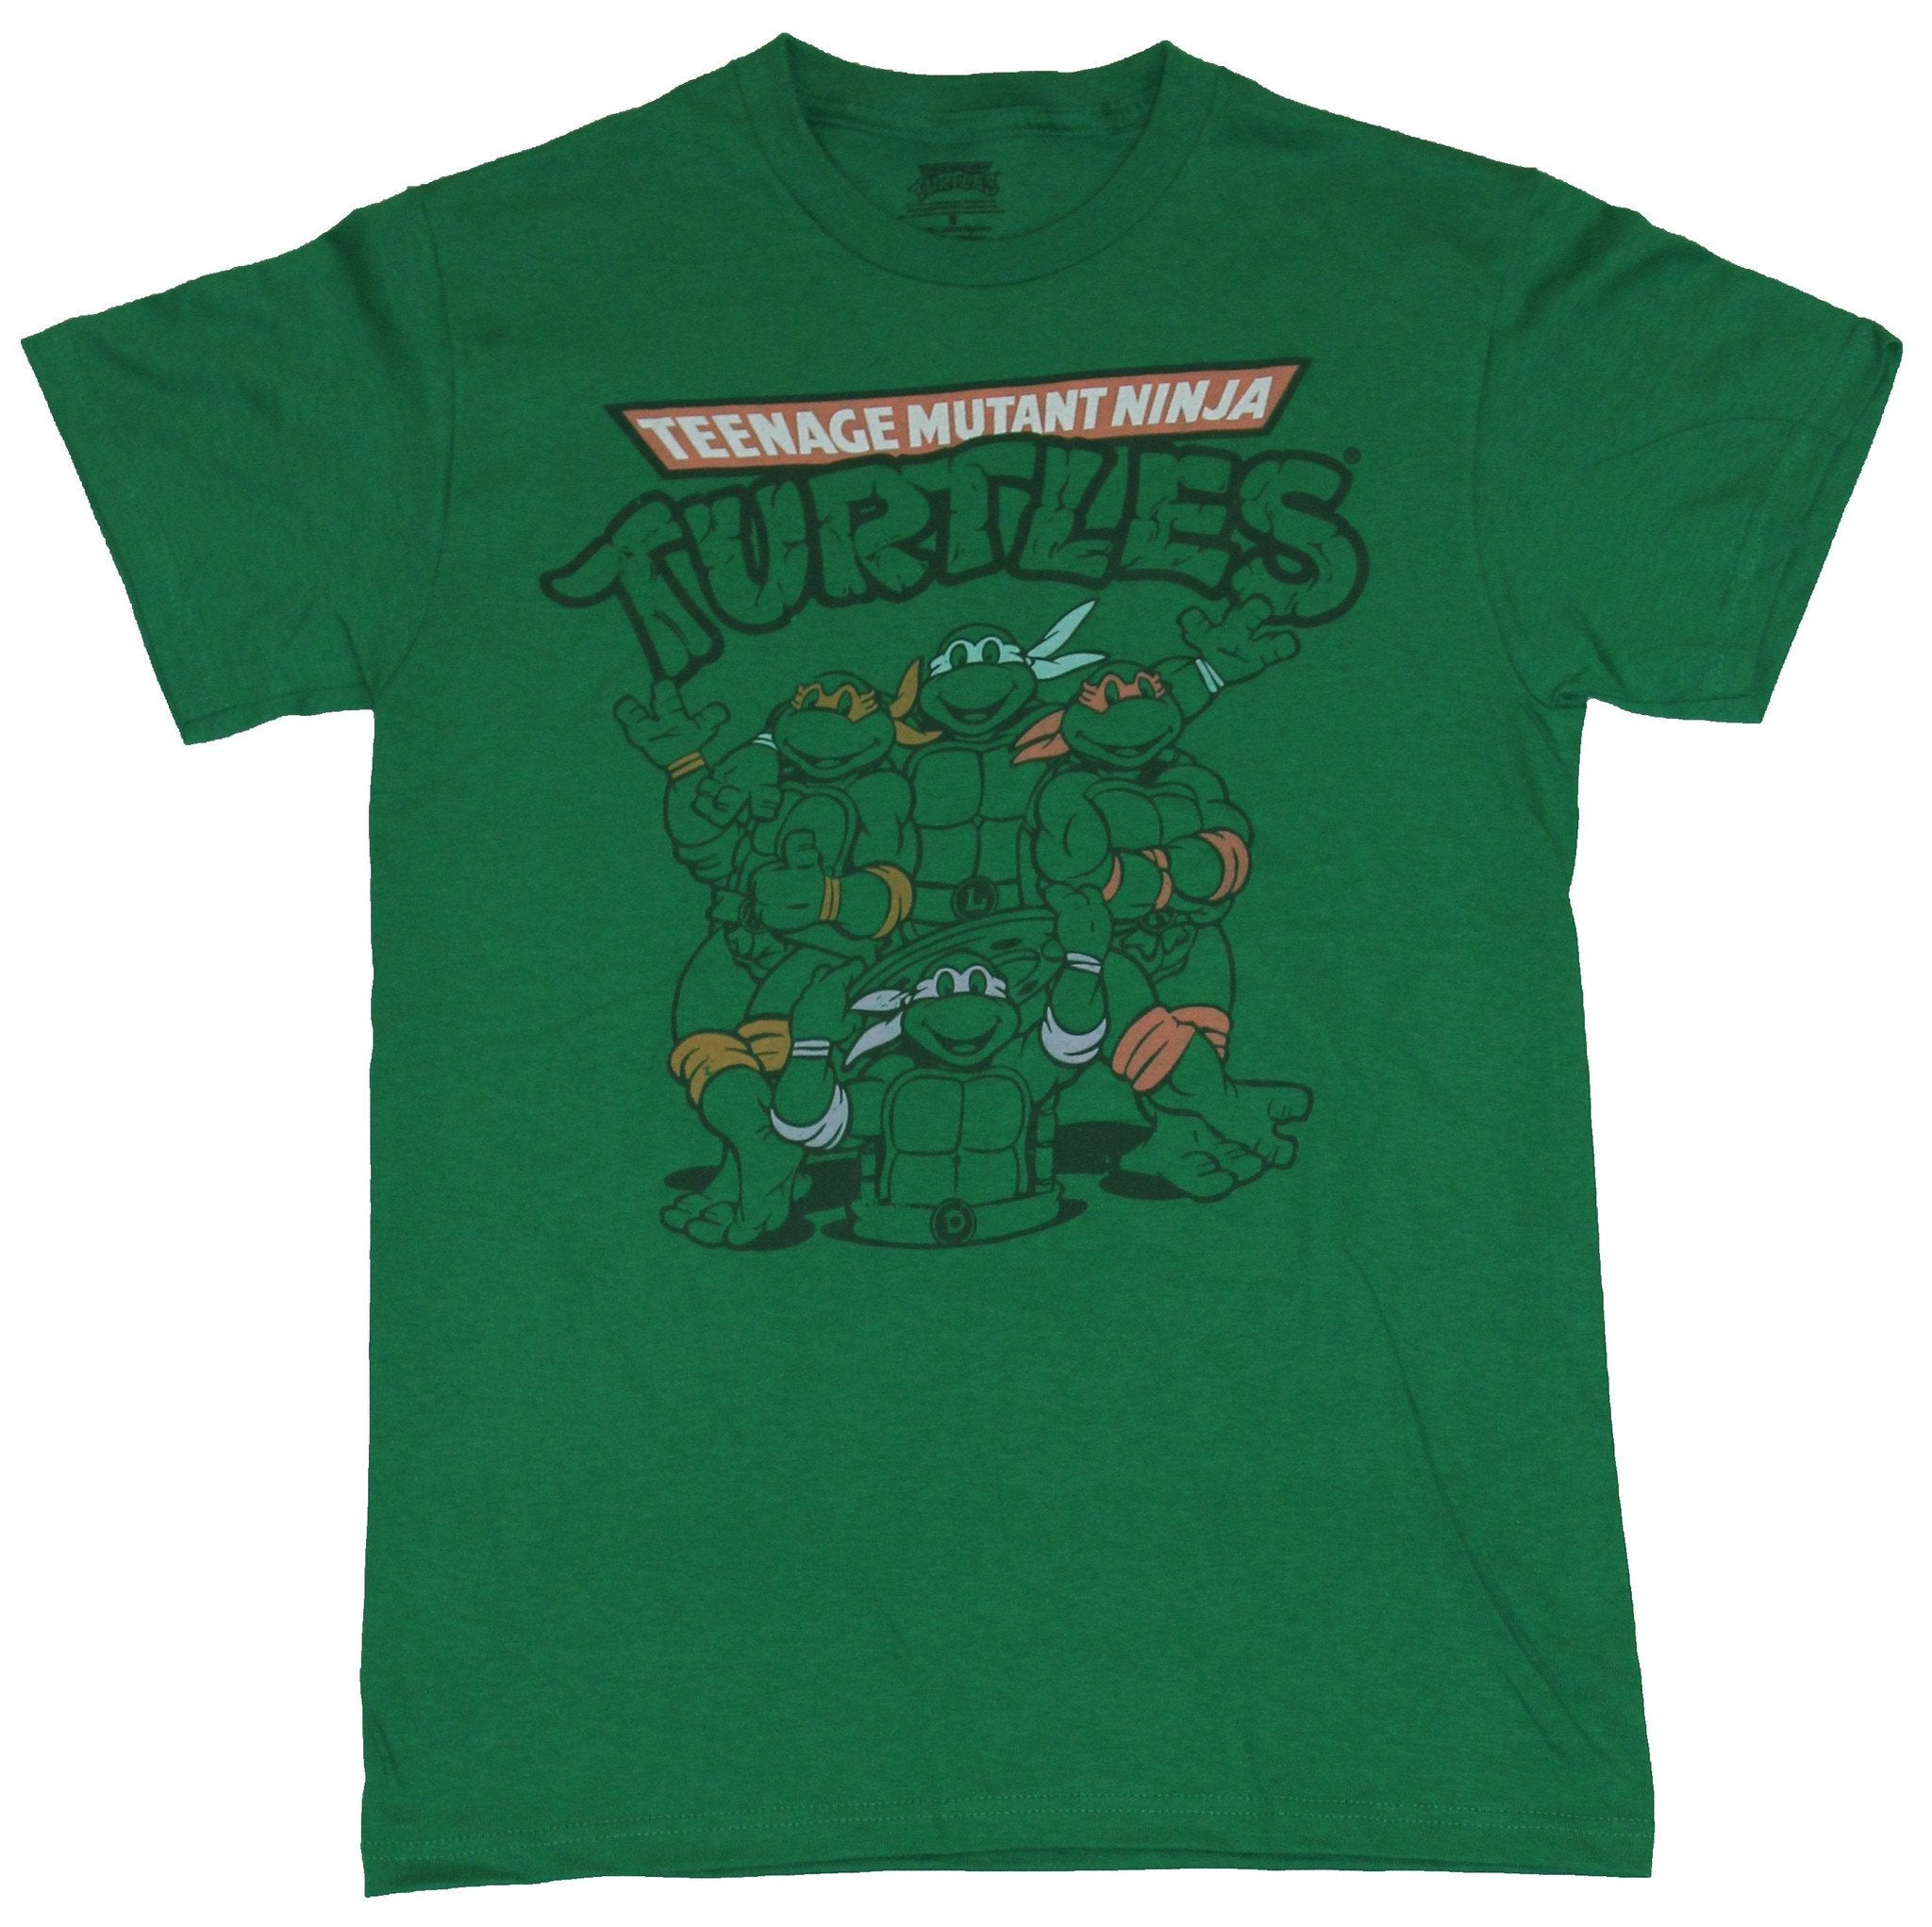 Teenage Mutant Ninja Turtles Mens T-Shirt - Line Drawn Turtles Around Manhole